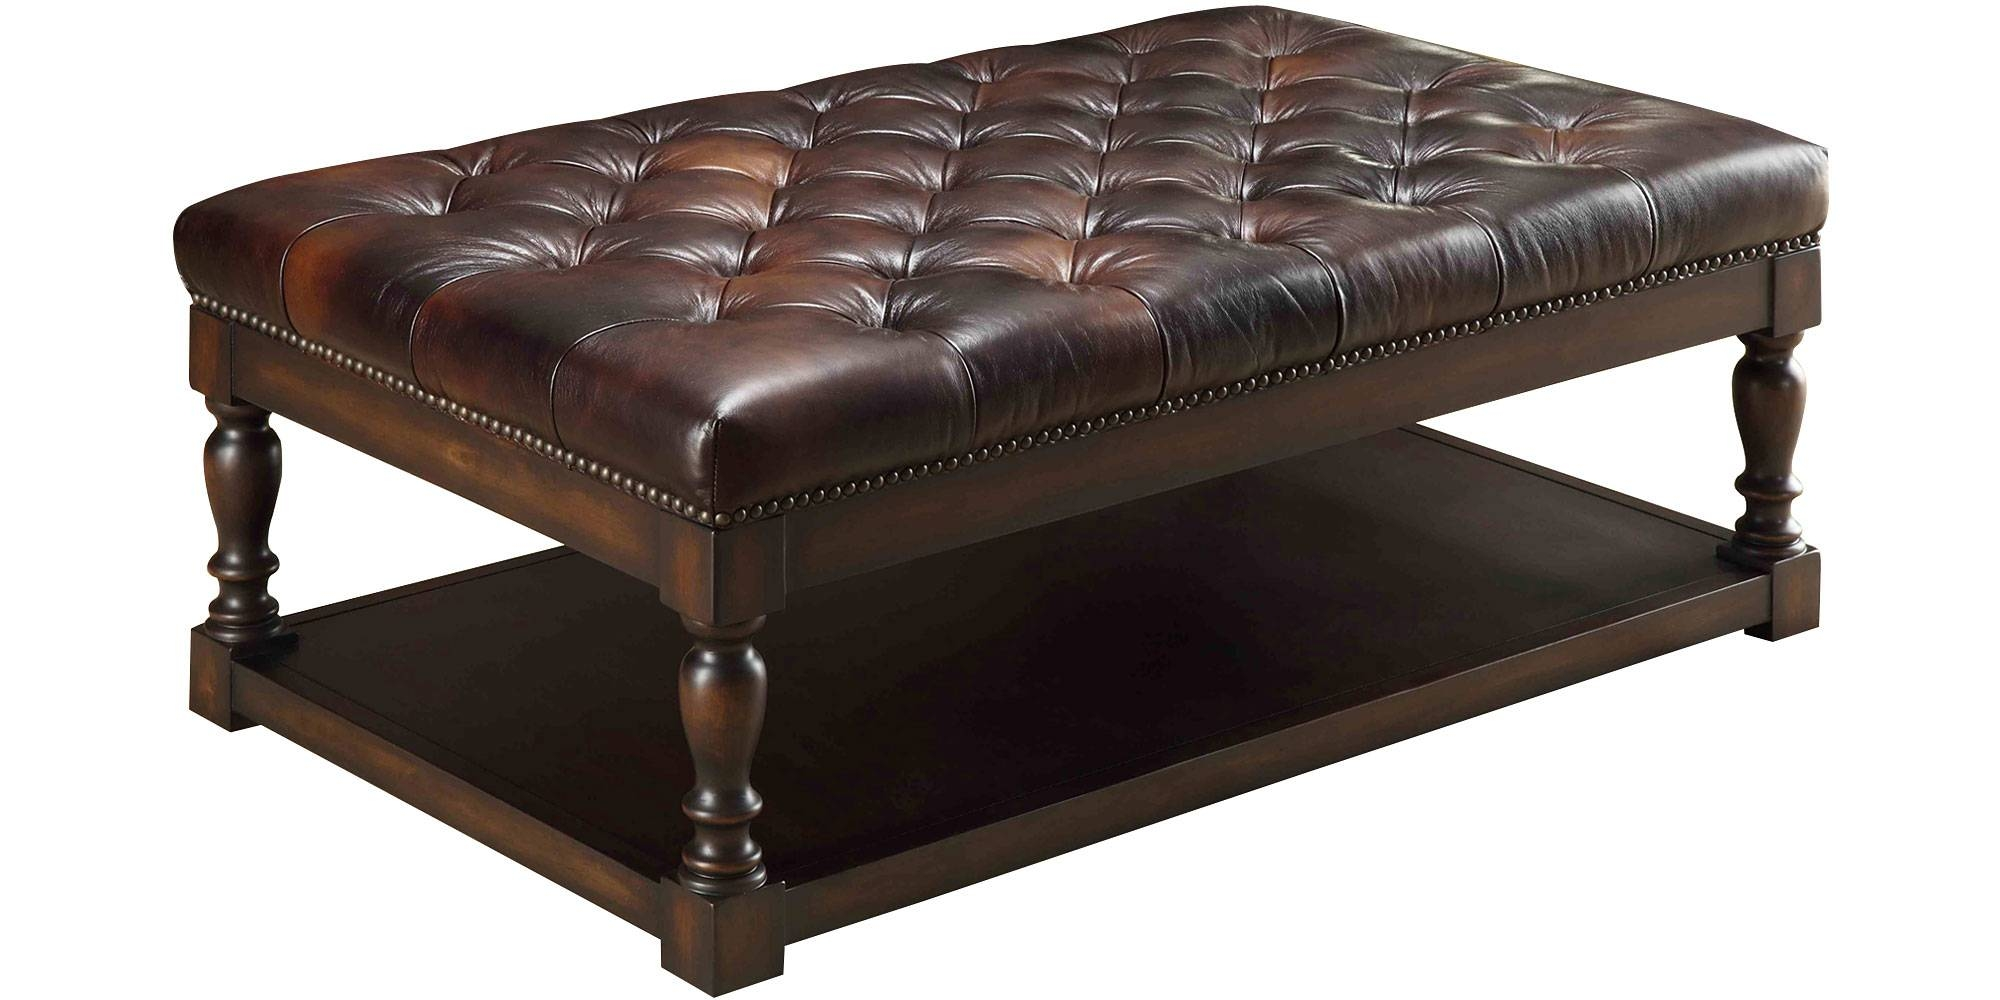 Tufted Ottoman Coffee Table ~ Home Decorations with regard to Brown Leather Ottoman Coffee Tables With Storages (Image 30 of 30)